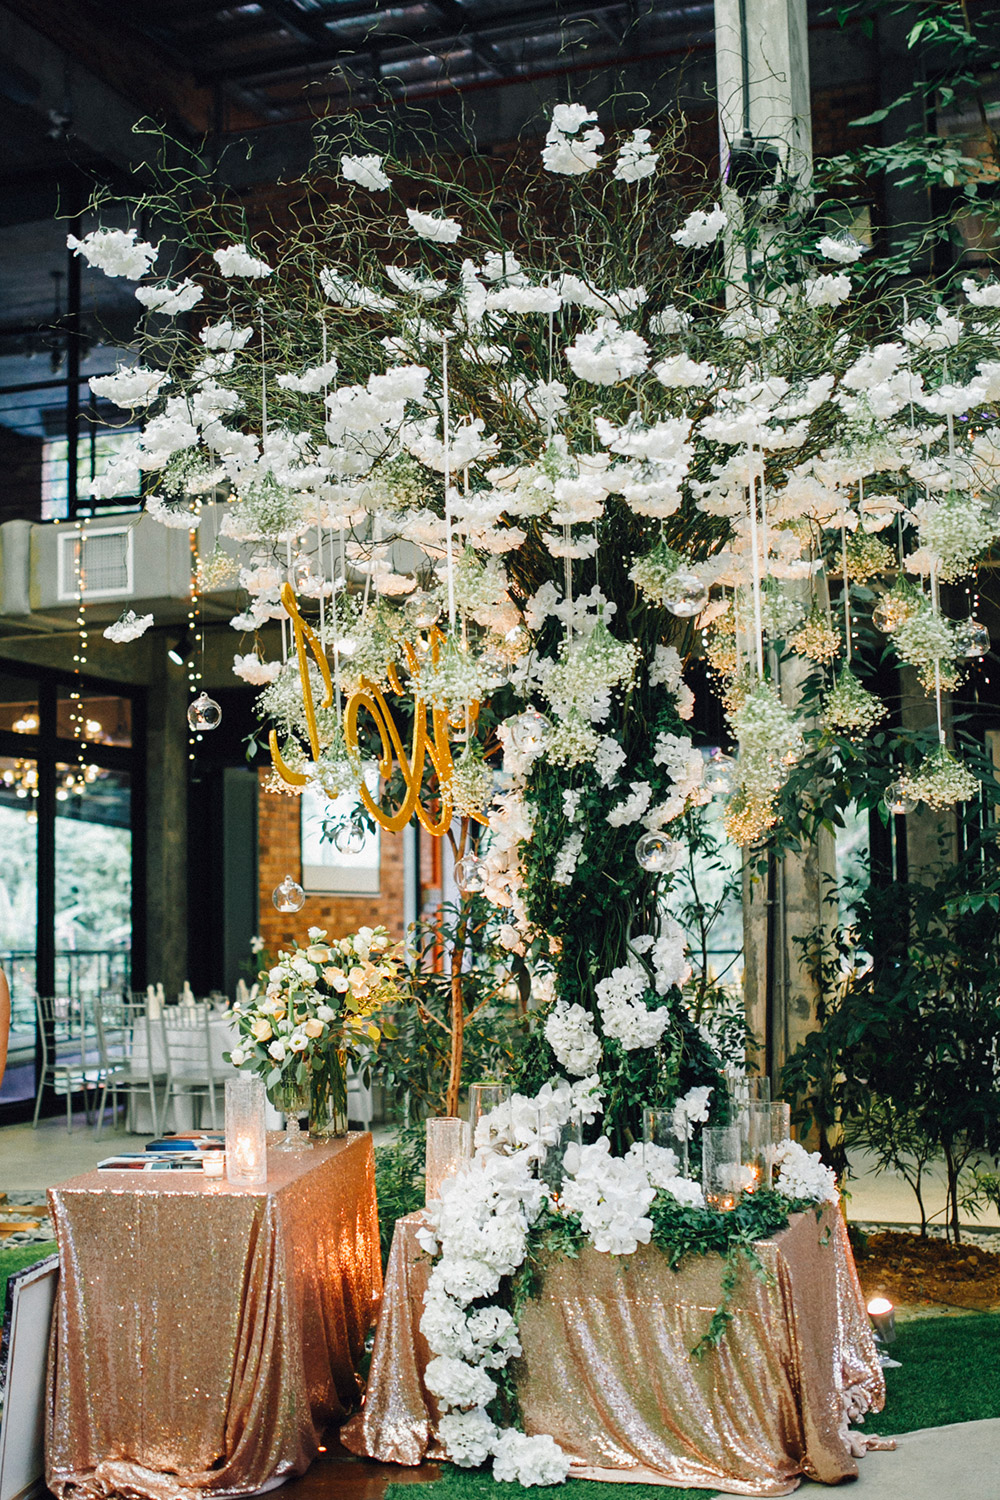 Wedding wishing tree. Photo by Plan A Production. www.theweddingnotebook.com